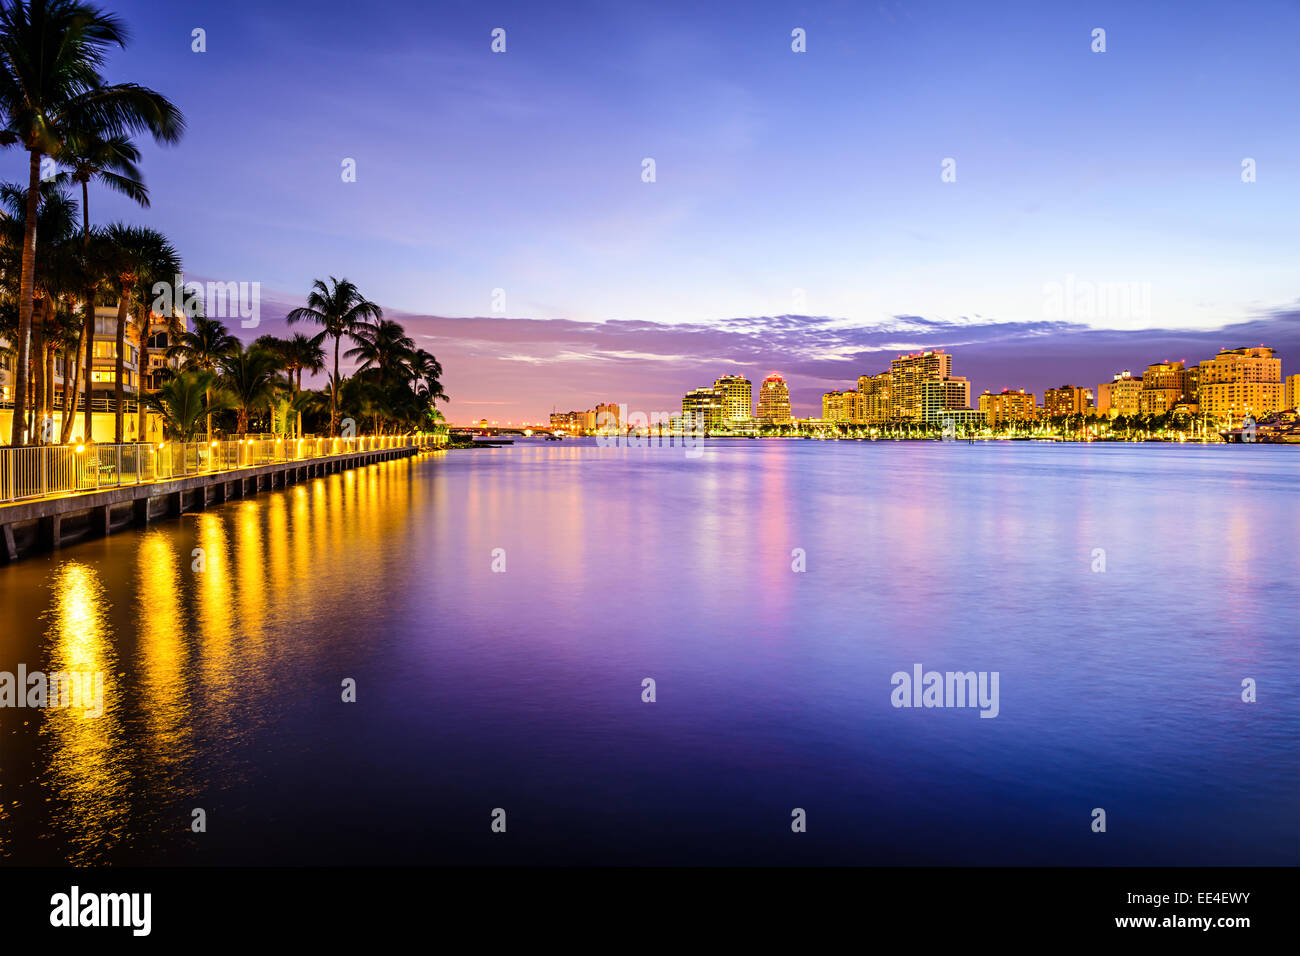 West Palm Beach, Florida cityscape on the Intracoastal Waterway. - Stock Image